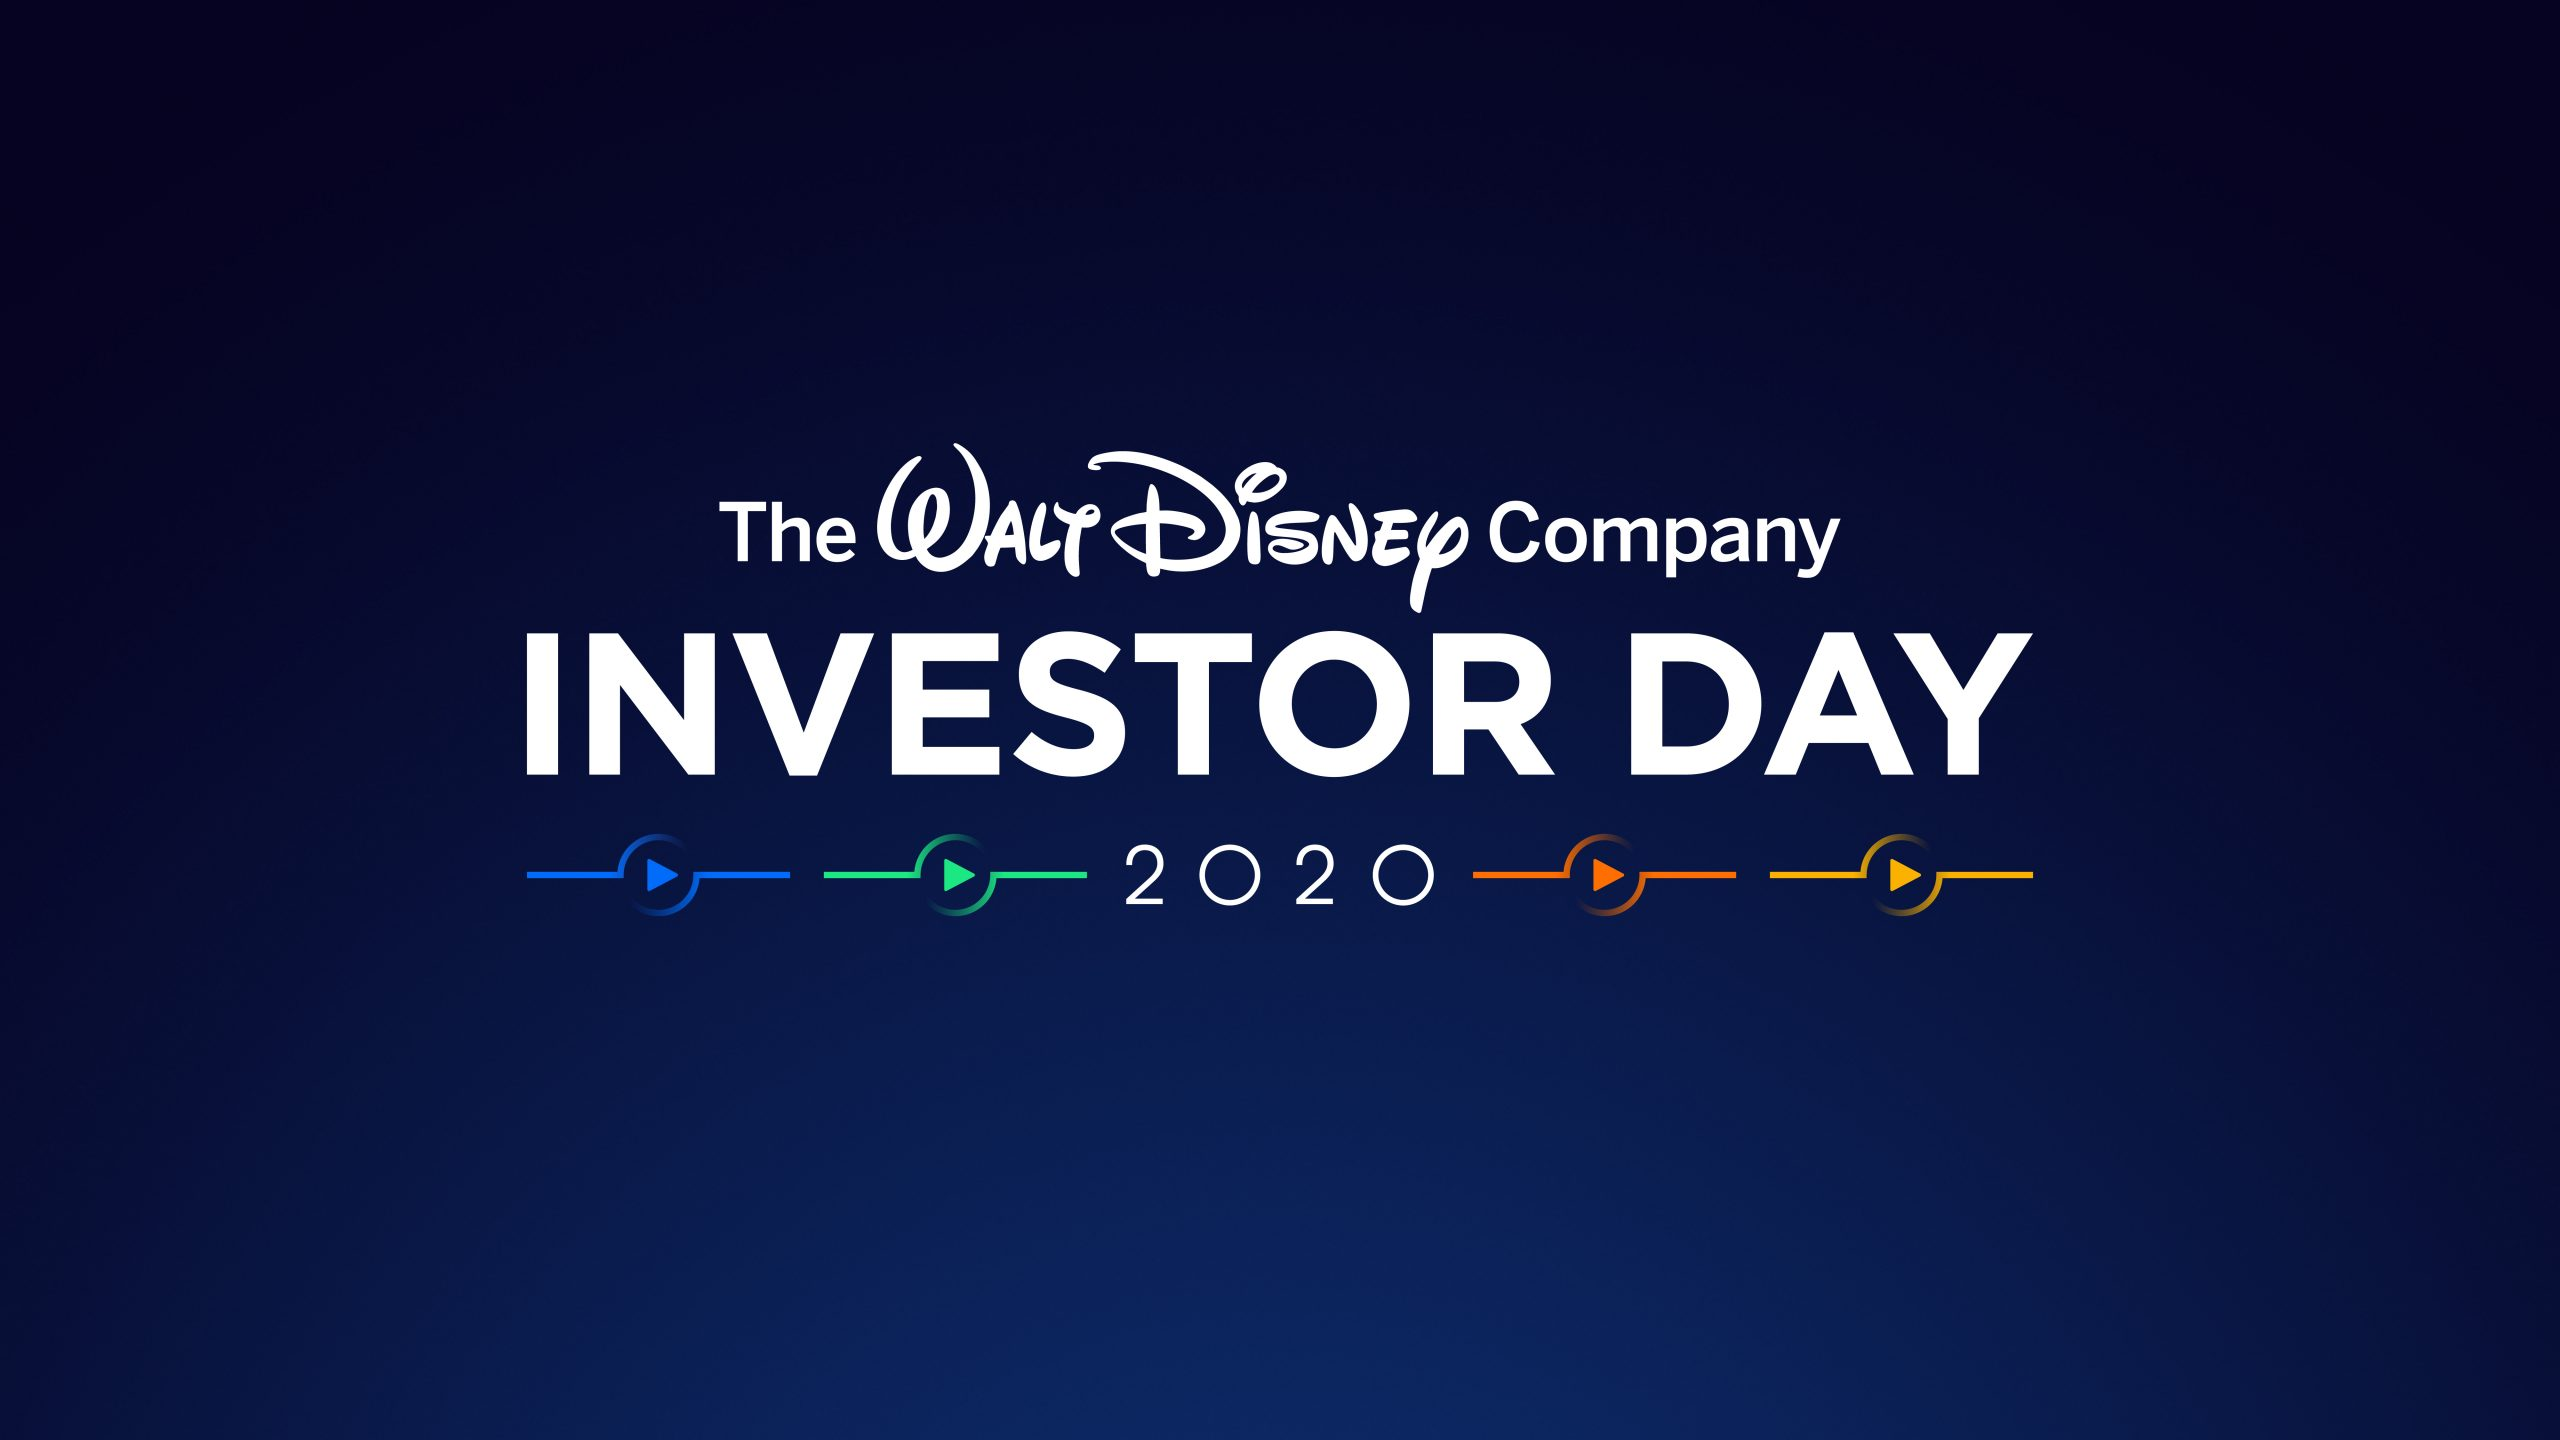 Disney Investor Day: National Geographic Fact Sheet